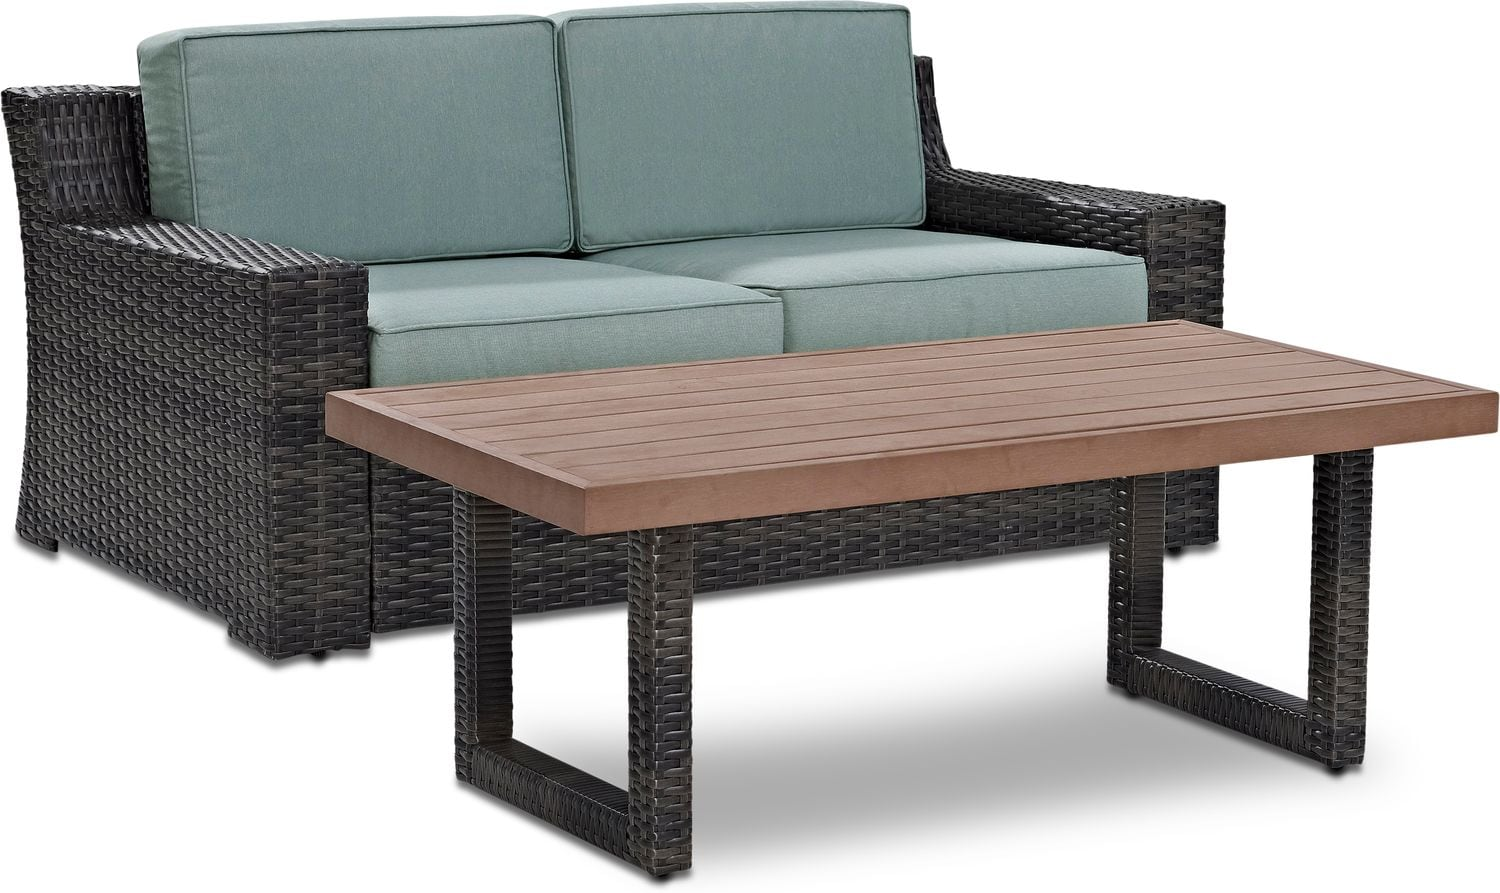 Outdoor Furniture - Tethys Outdoor Loveseat and Coffee Table Set - Mist